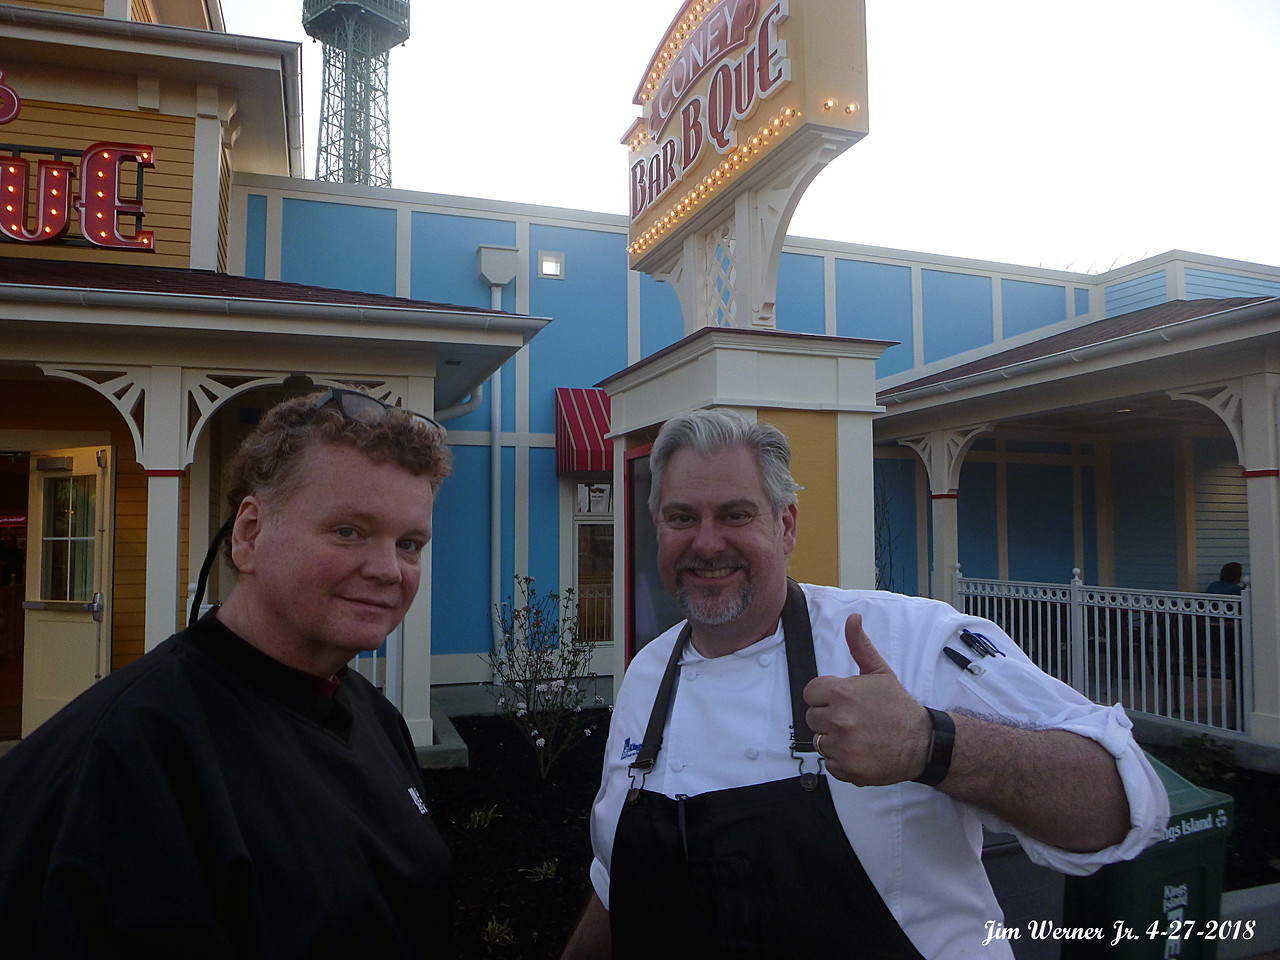 """Kings Island's new executive chef, James Major! He has won twice on the Food Network's reality show, """"Chopped."""" He has also appeared on """"Cutthroat Kitchen."""""""